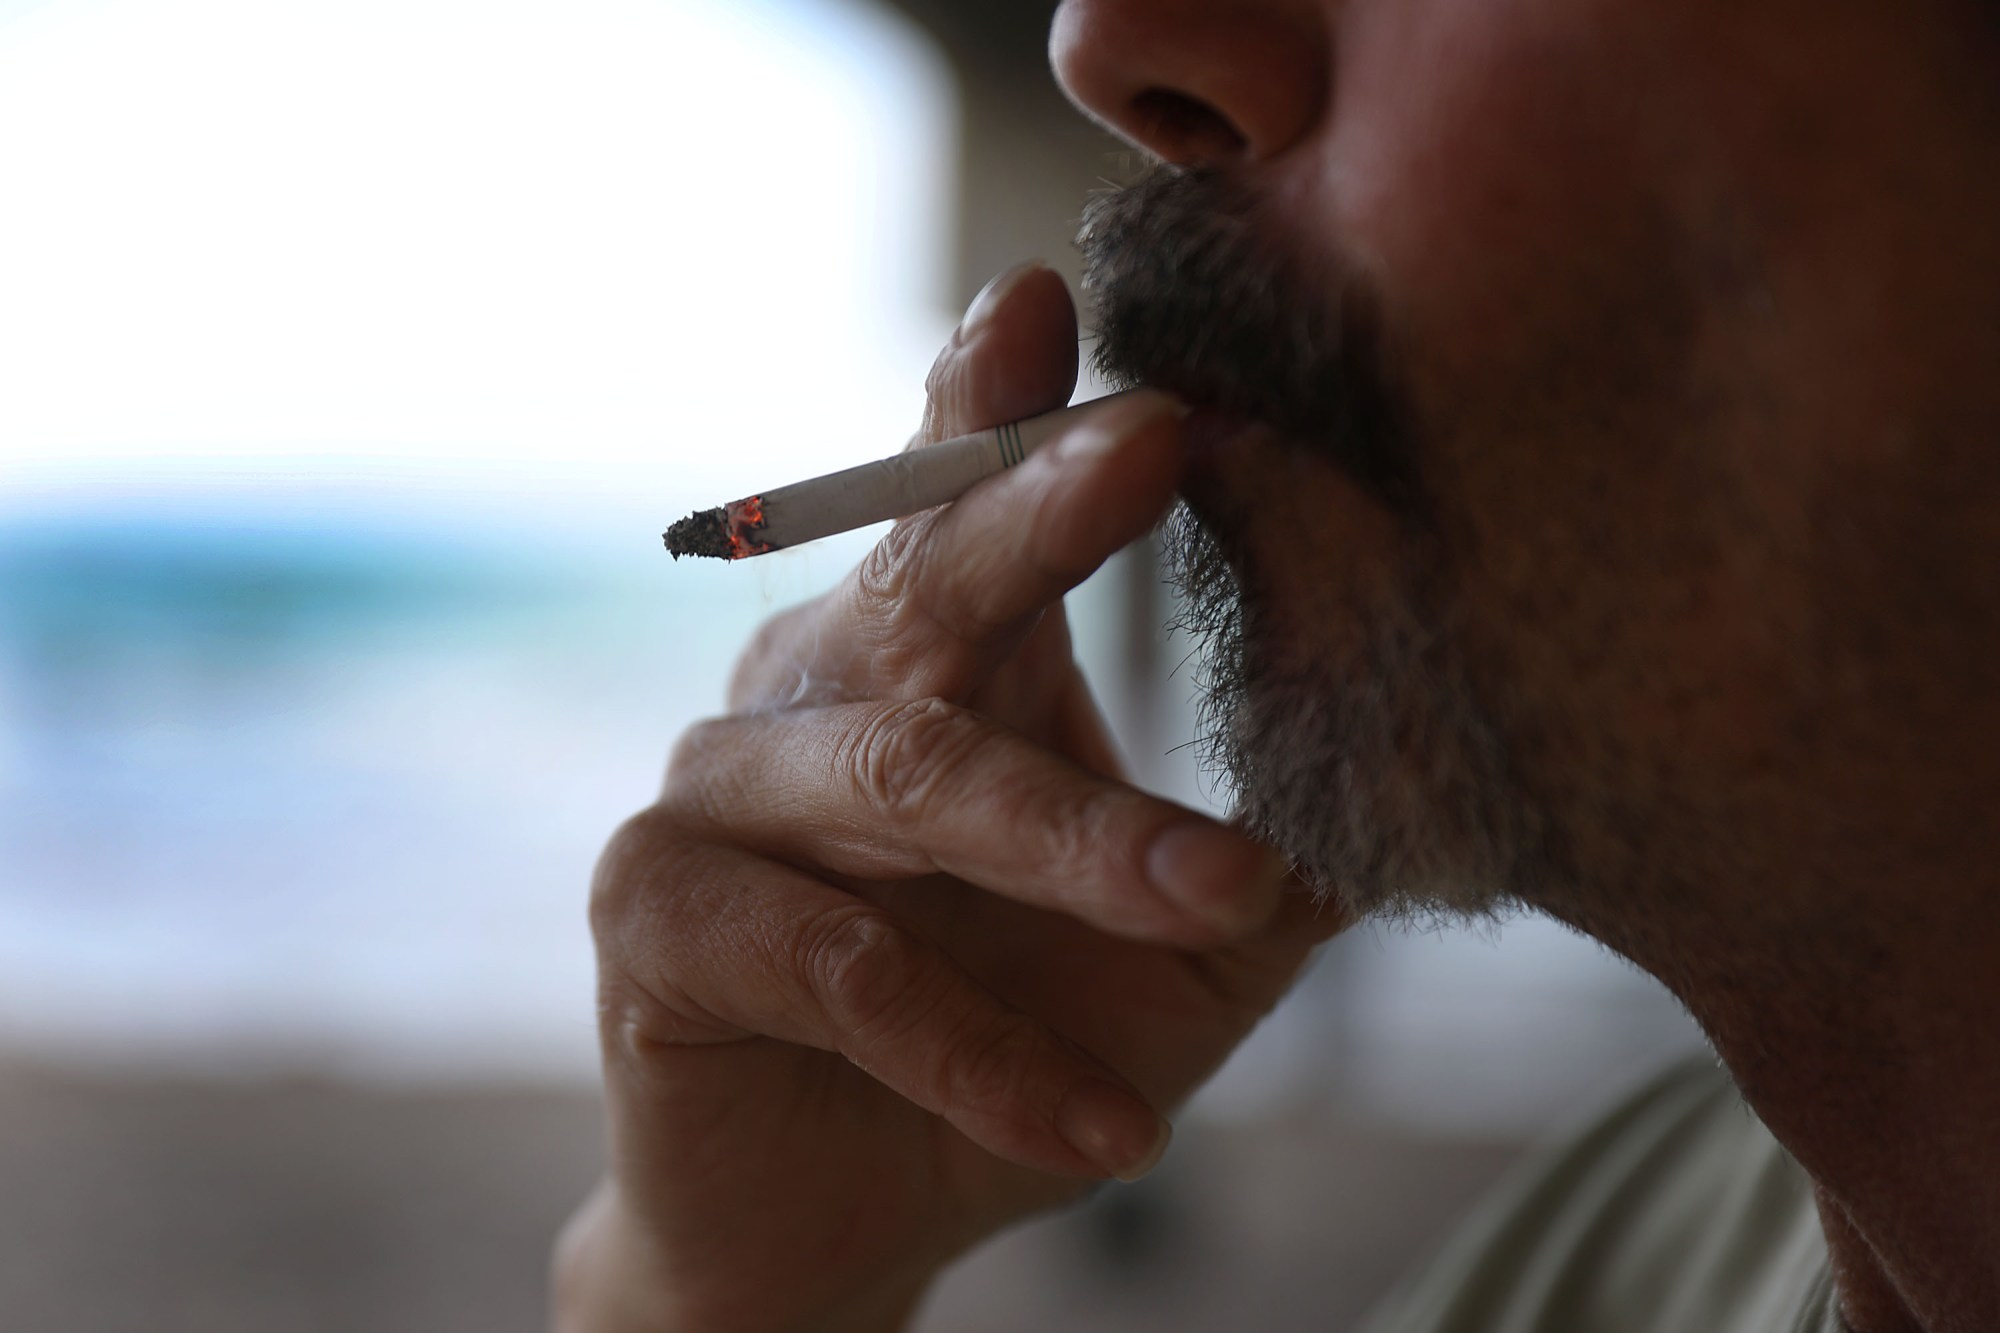 A man smokes a cigarette at Dania Beach, Florida in this Jan. 3, 2019 file photo. (Joe Raedle/Getty Images)